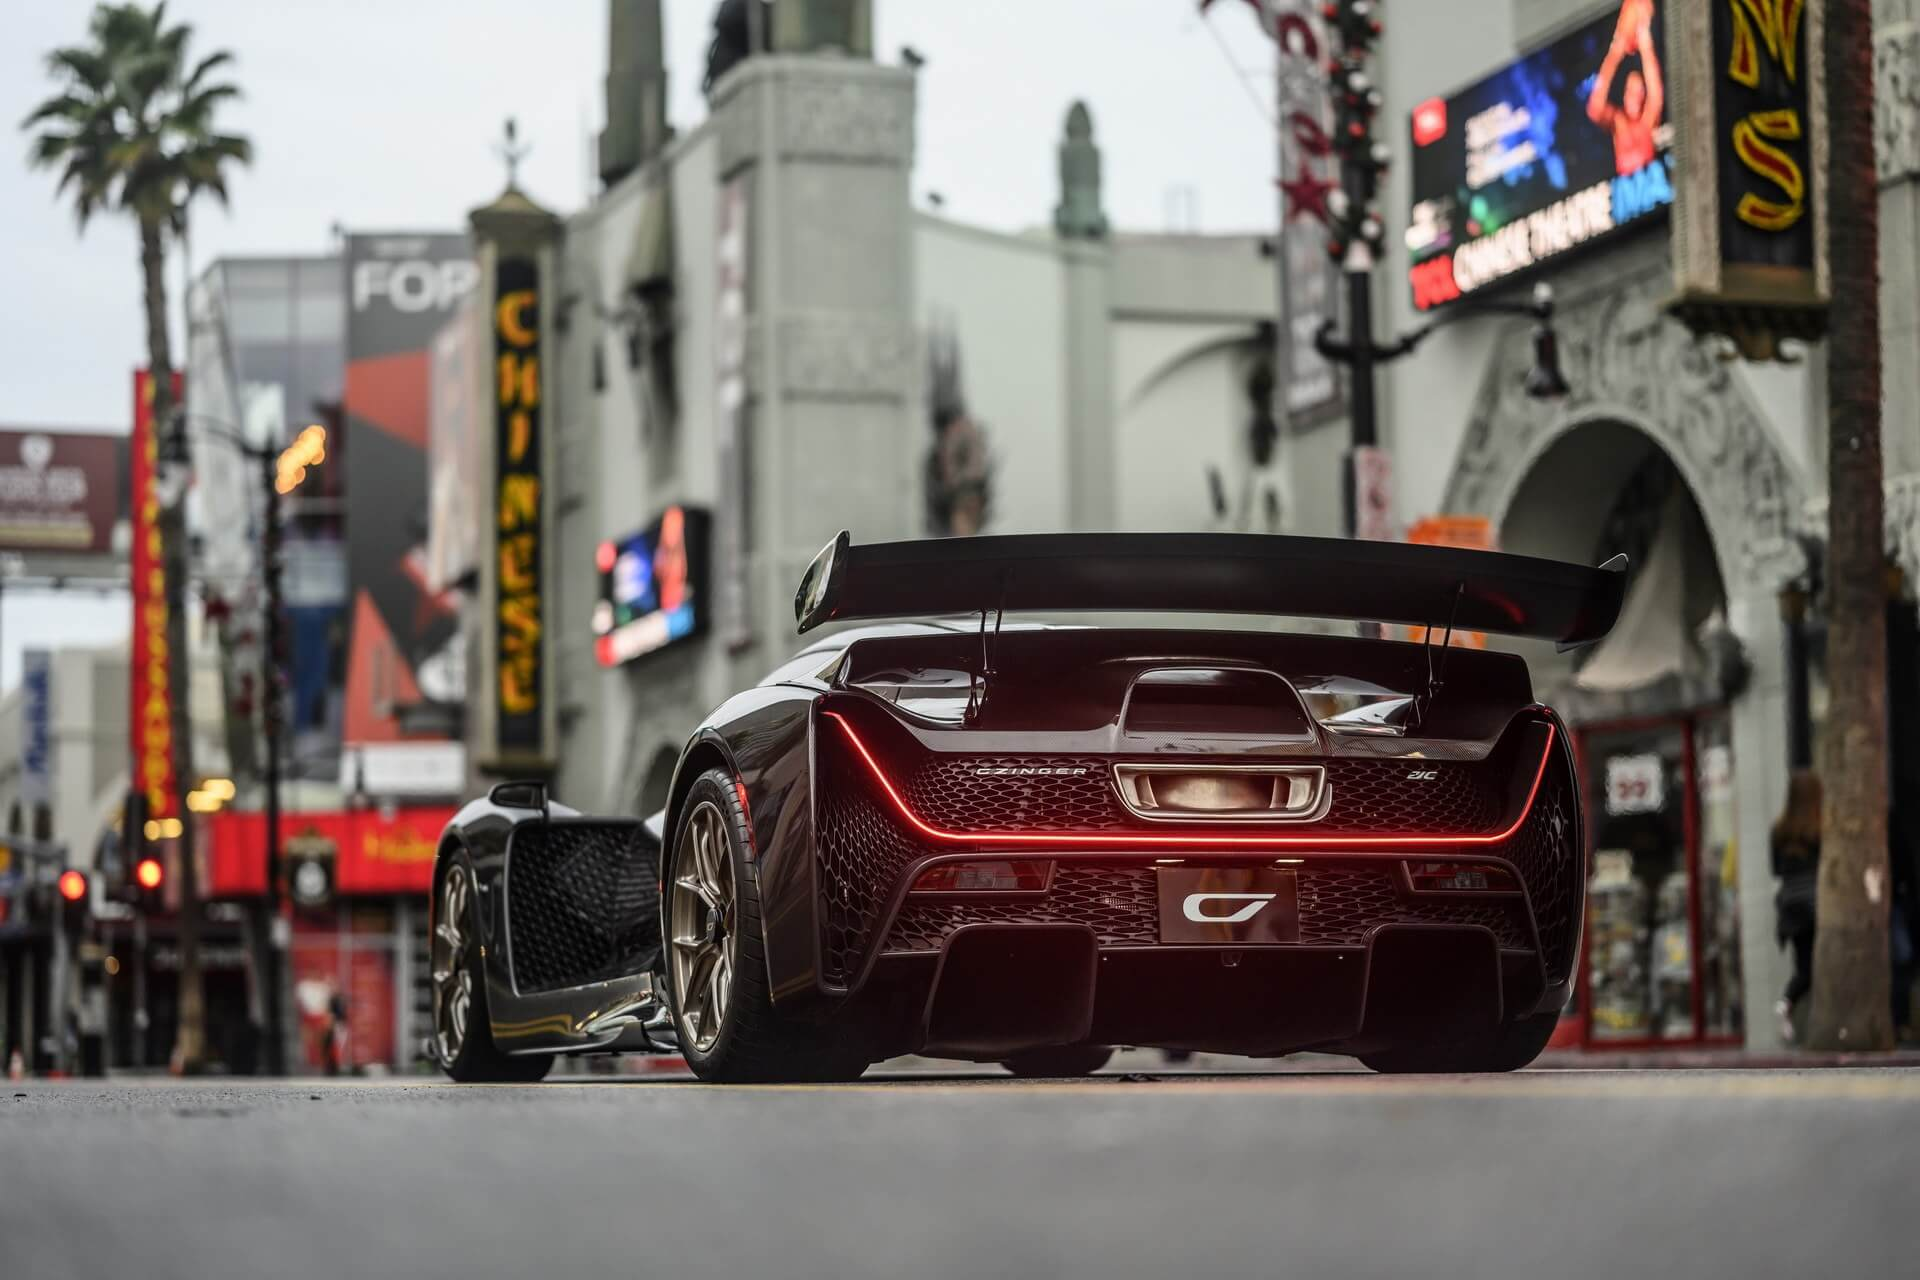 The Czinger 21C is a 3D-printed, $1.7 million hypercar that can do 268mph